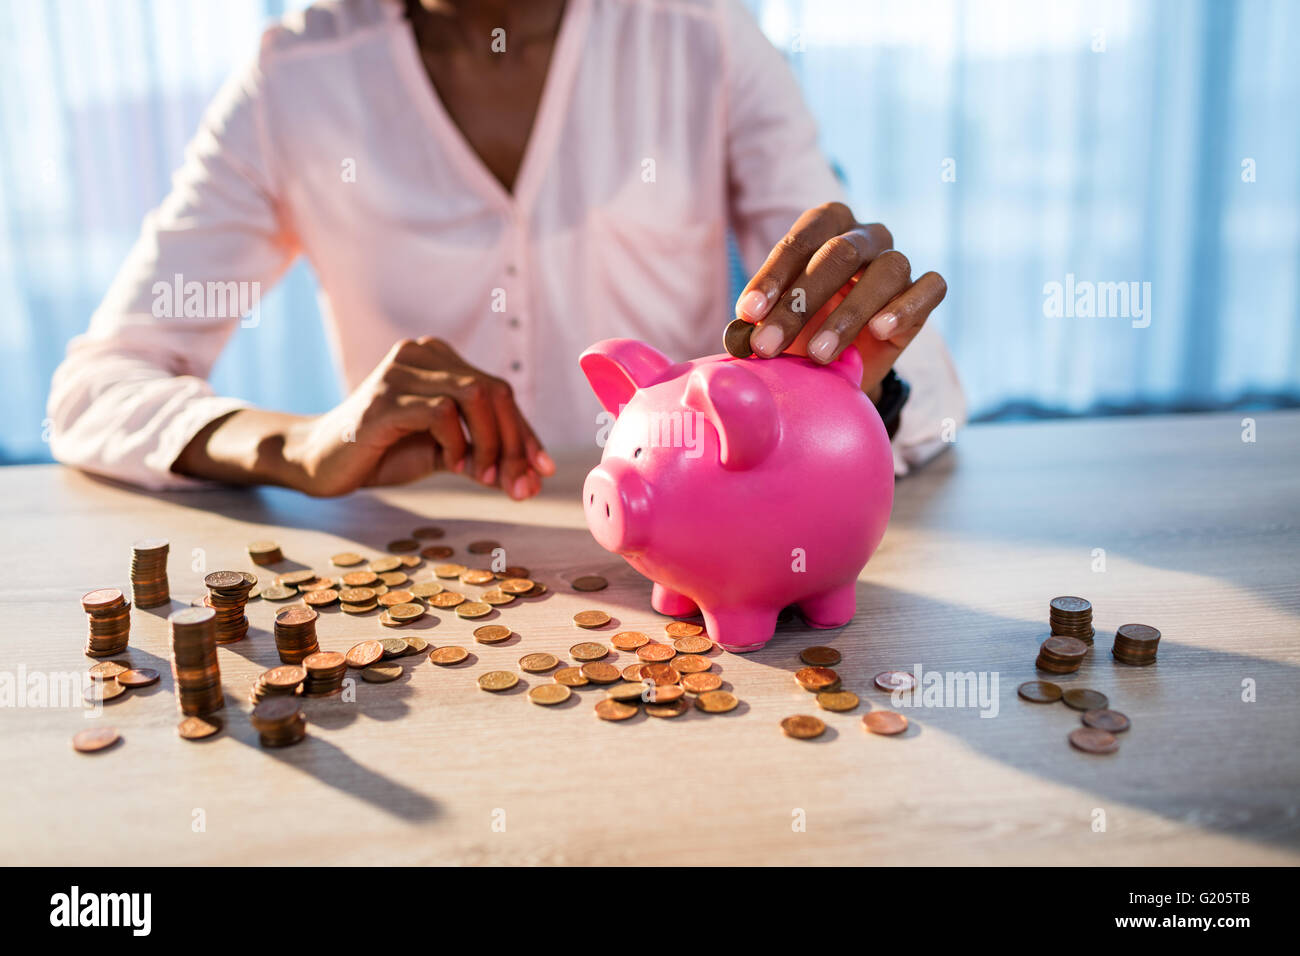 Woman putting money in a piggy bank Stock Photo